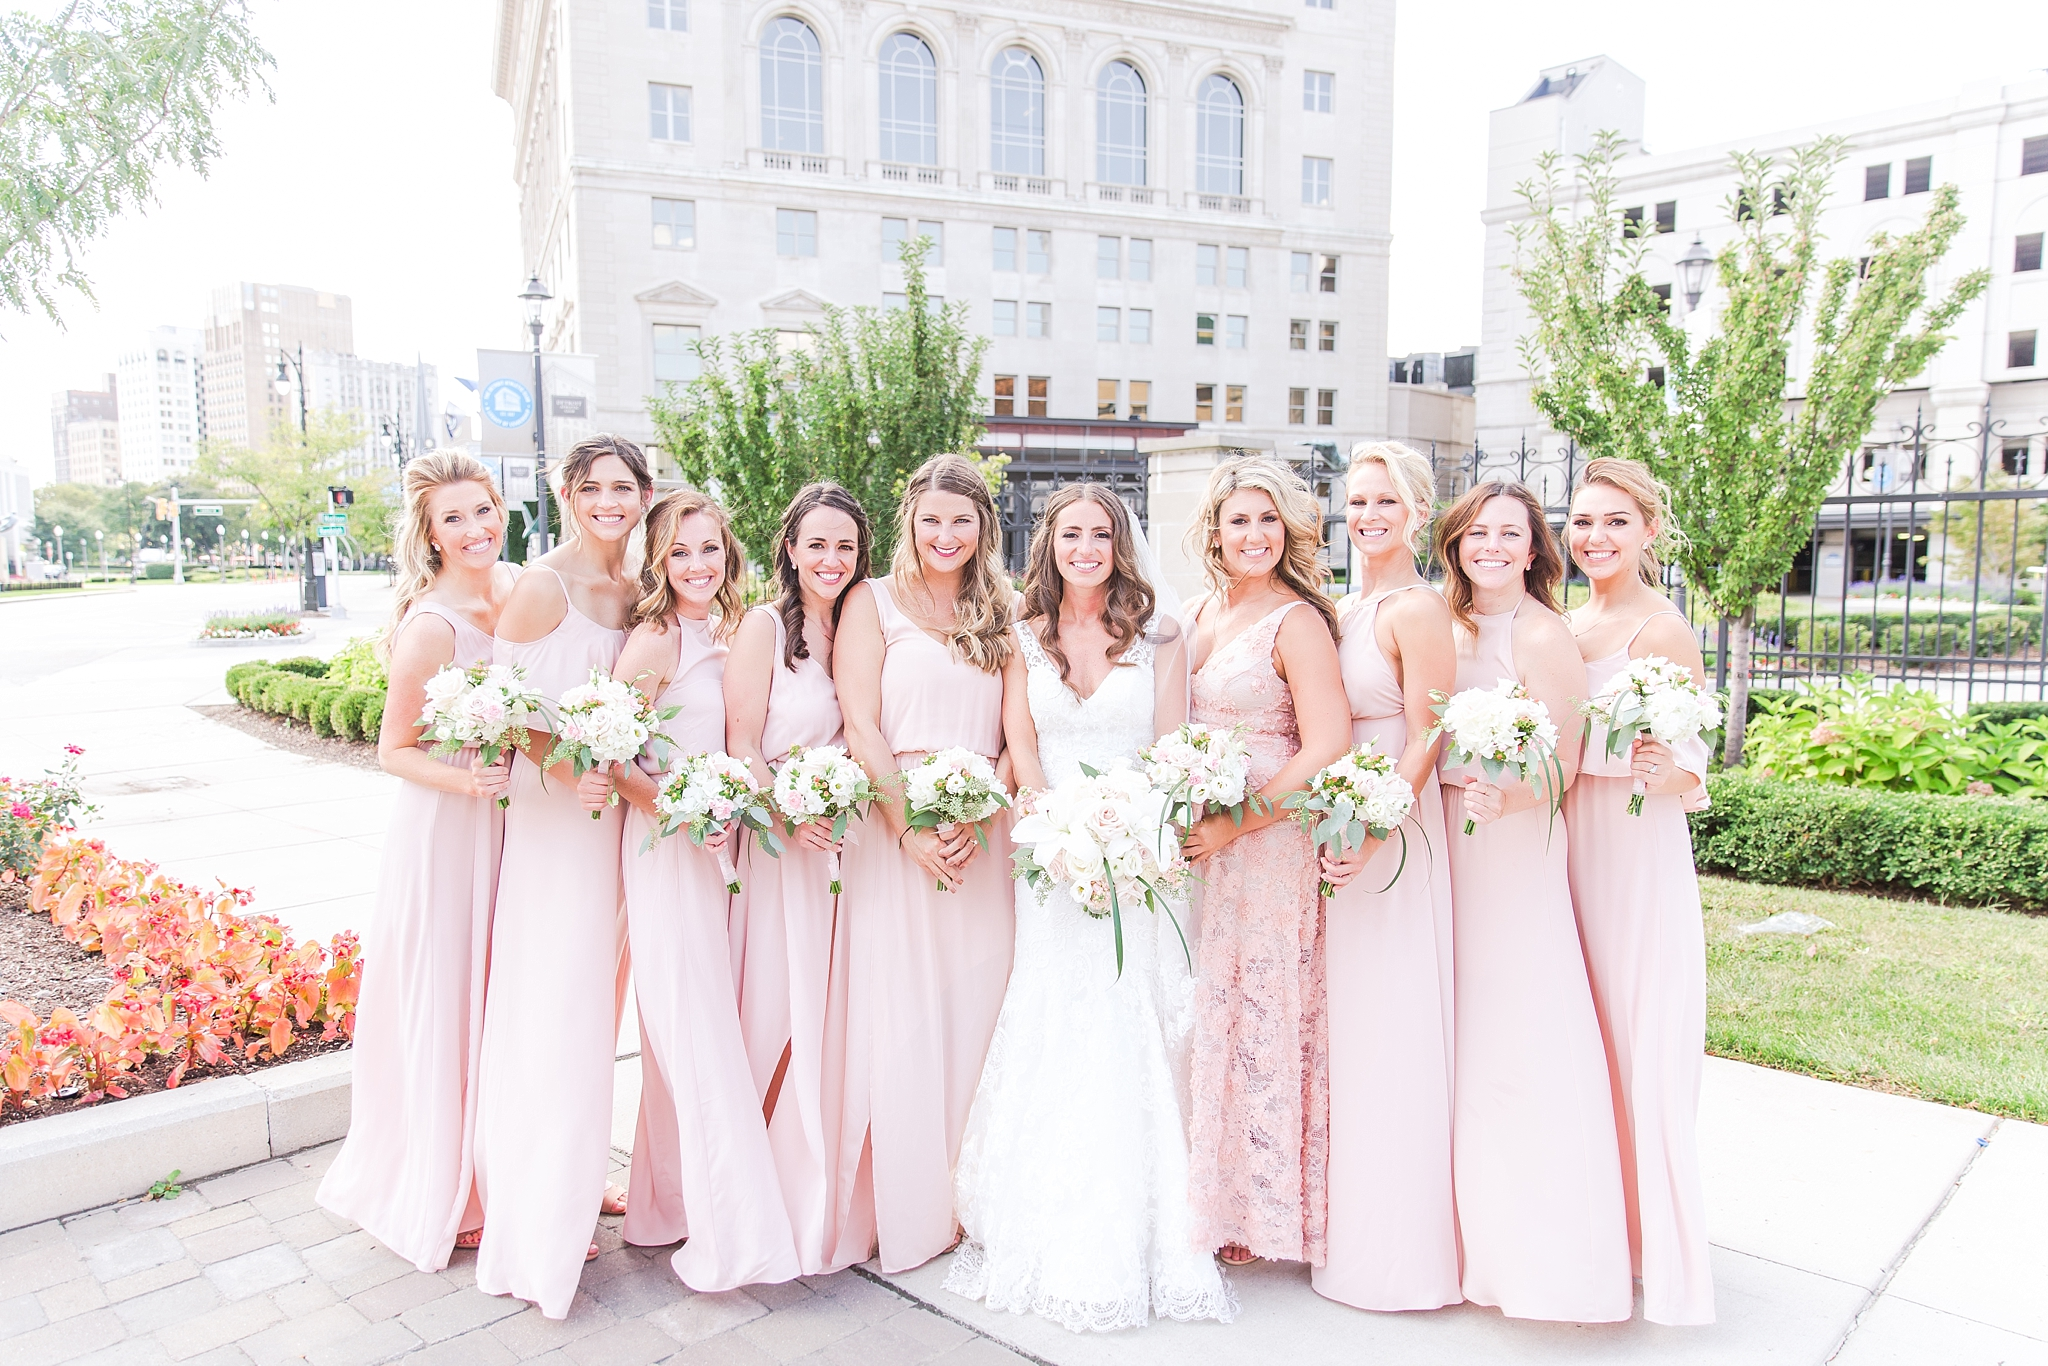 playful-blush-navy-wedding-photos-the-detroit-athletic-club-in-detroit-michigan-by-courtney-carolyn-photography_0047.jpg